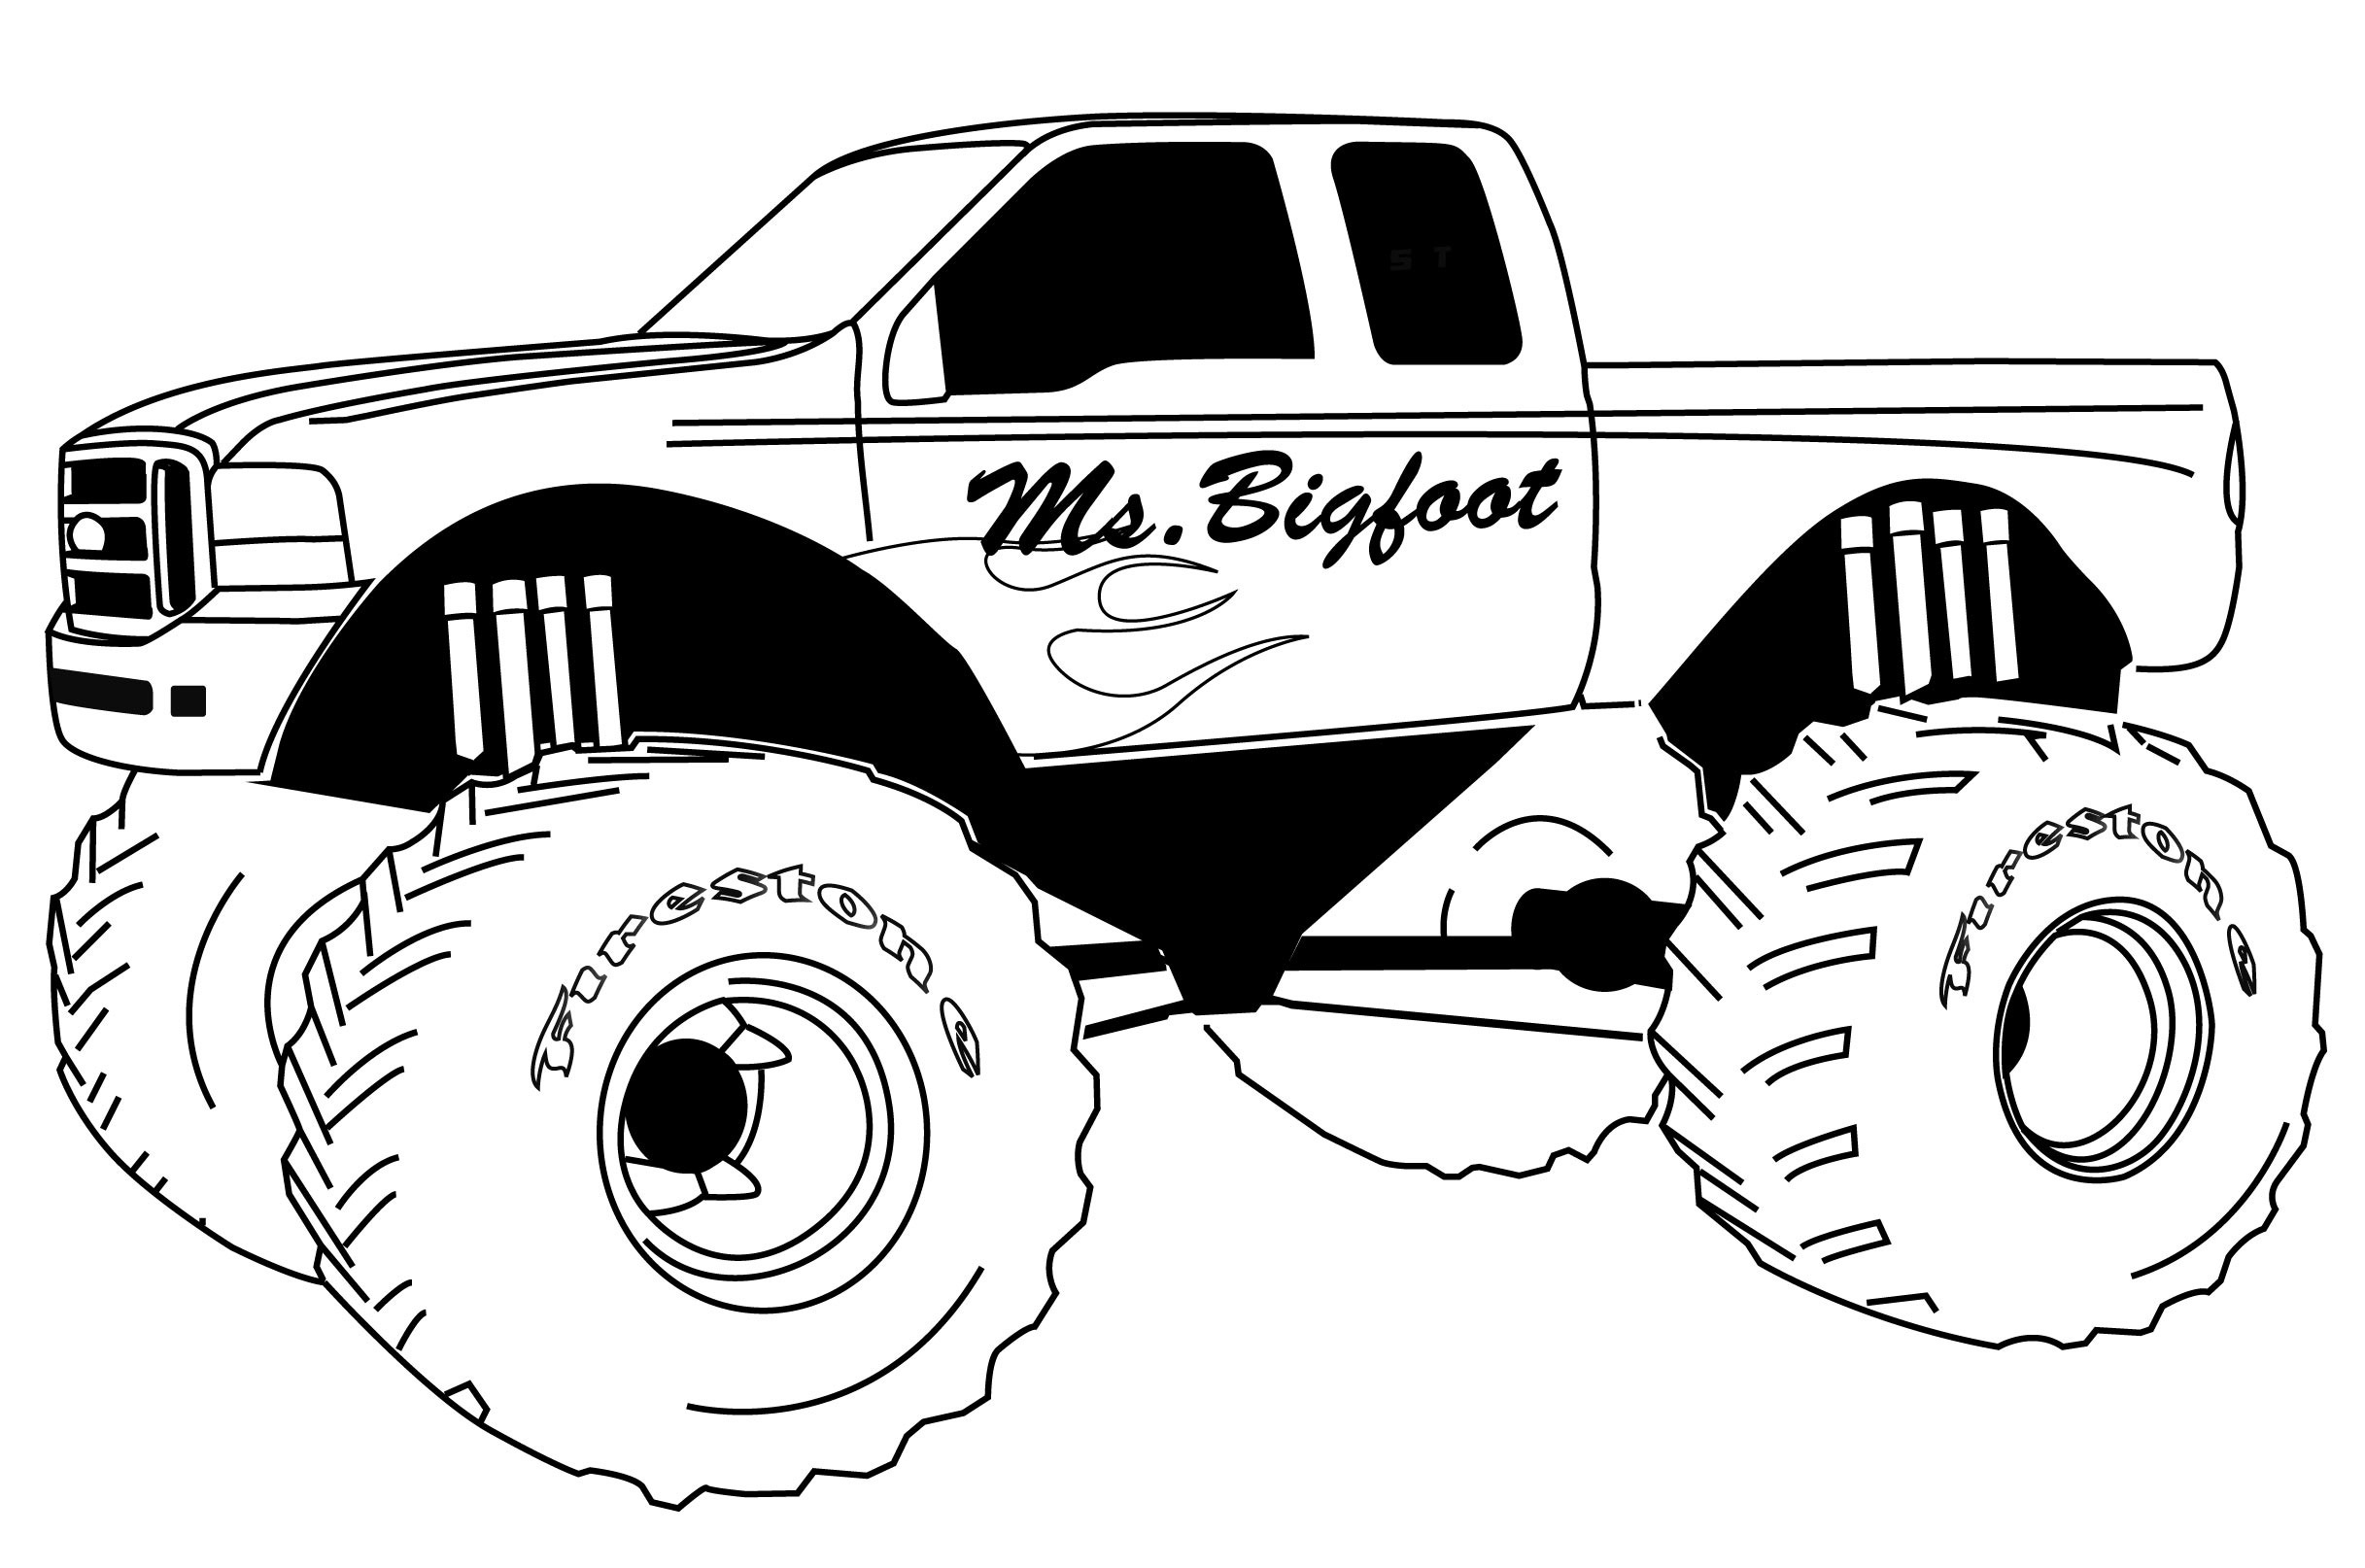 Coloring pictures of cars truck tractors - Monster Truck Color Pages